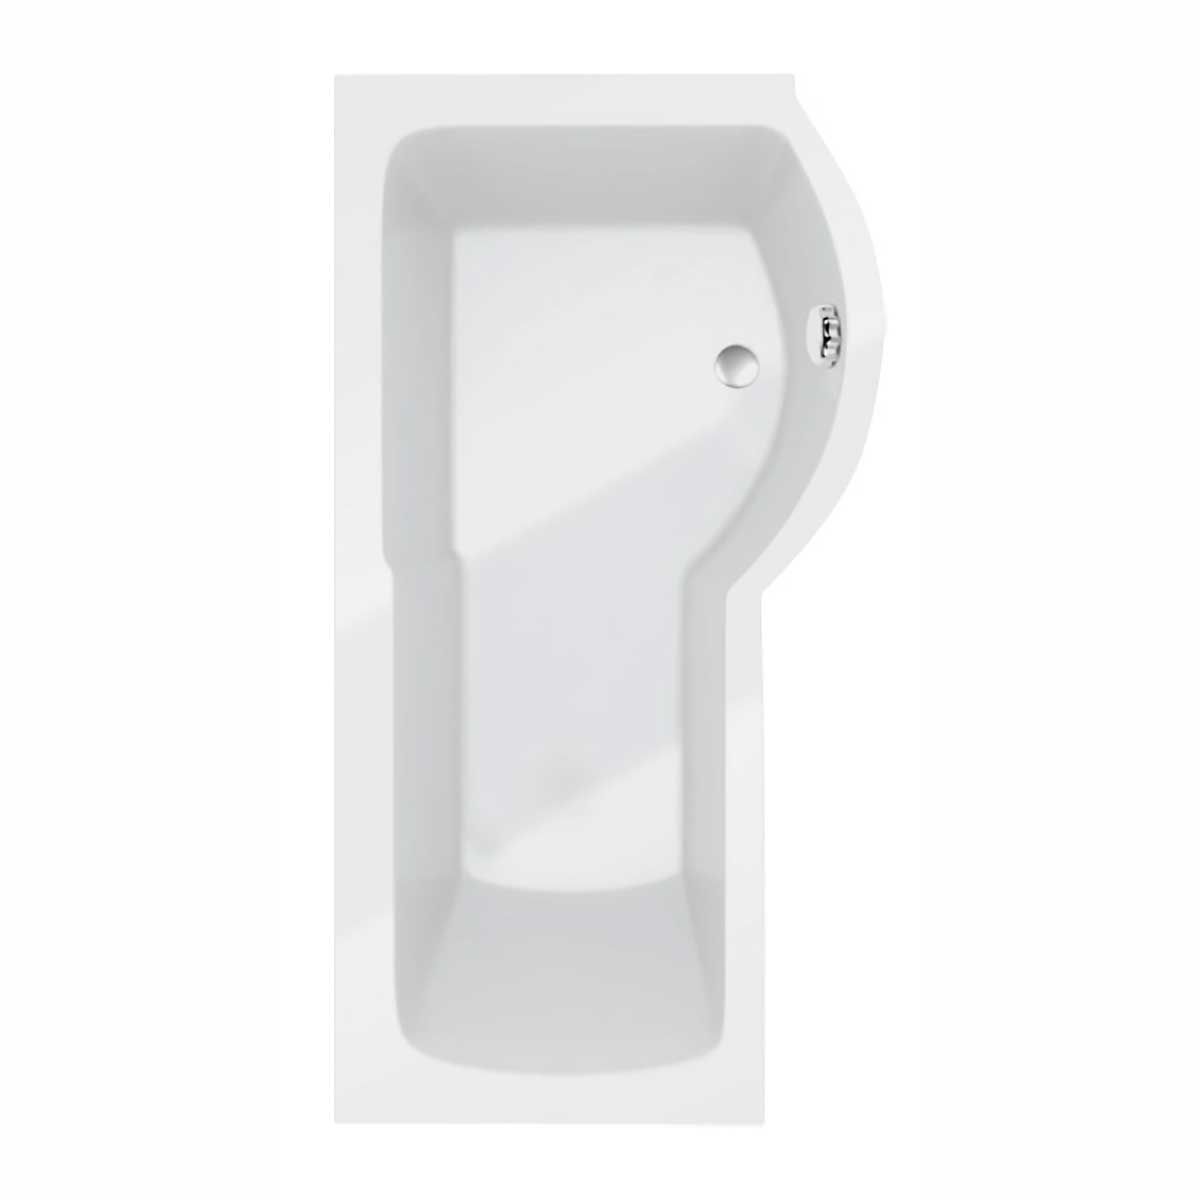 Kartell K-vit White Adapt P Shaped Right Hand Bath Only with leg sets 1500mm